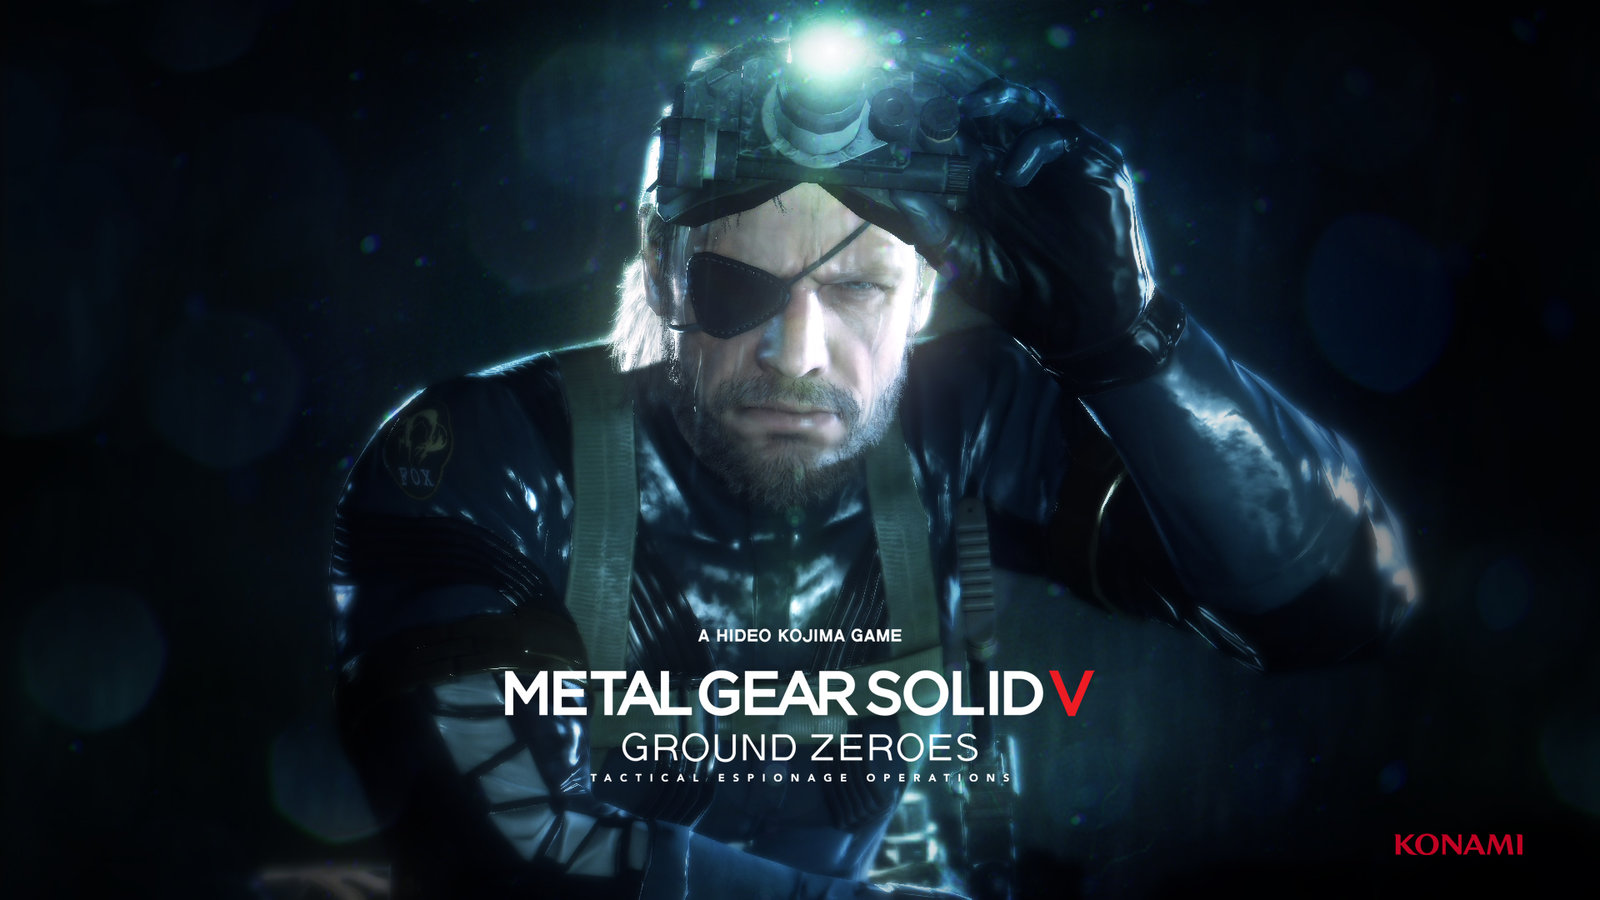 metal_gear_solid_5_ground_zeroes_wallpaper_by_solidalexei-d6t1wju